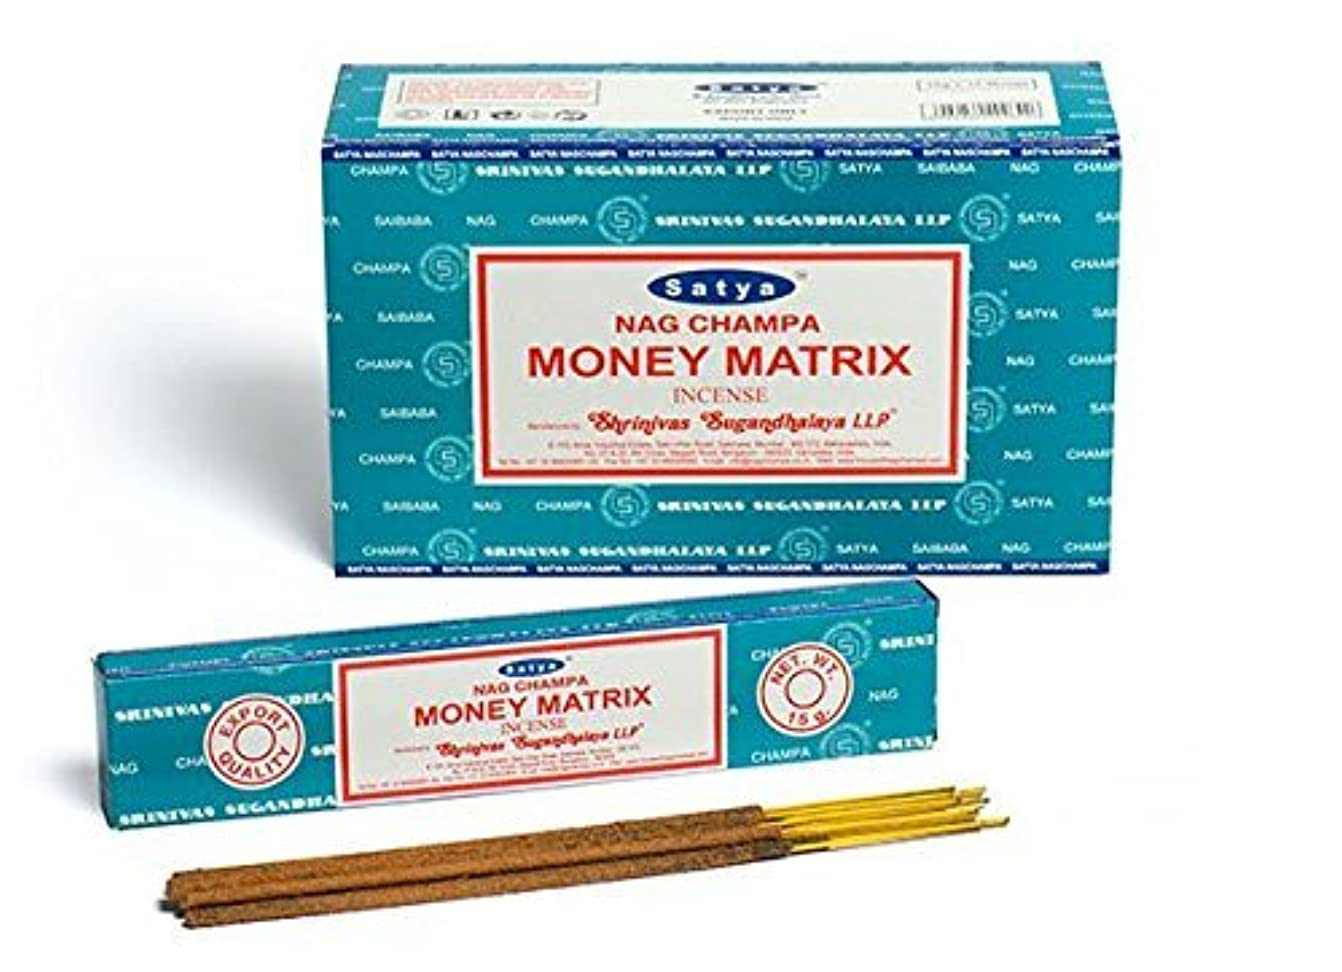 分集団的当社Buycrafty Satya Champa Money Matrix Incense Stick,180 Grams Box (15g x 12 Boxes)